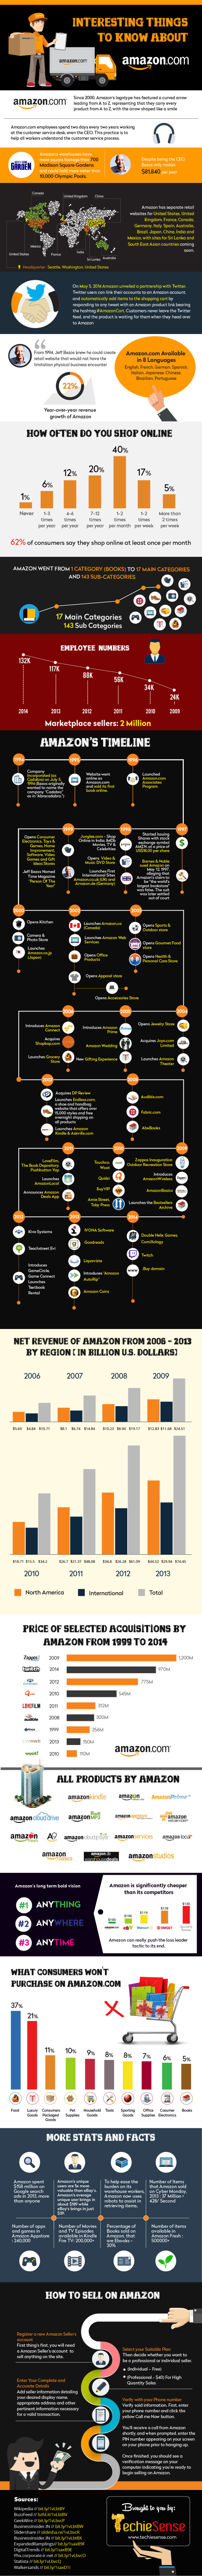 Interesting Things to Know About Amazon infographic